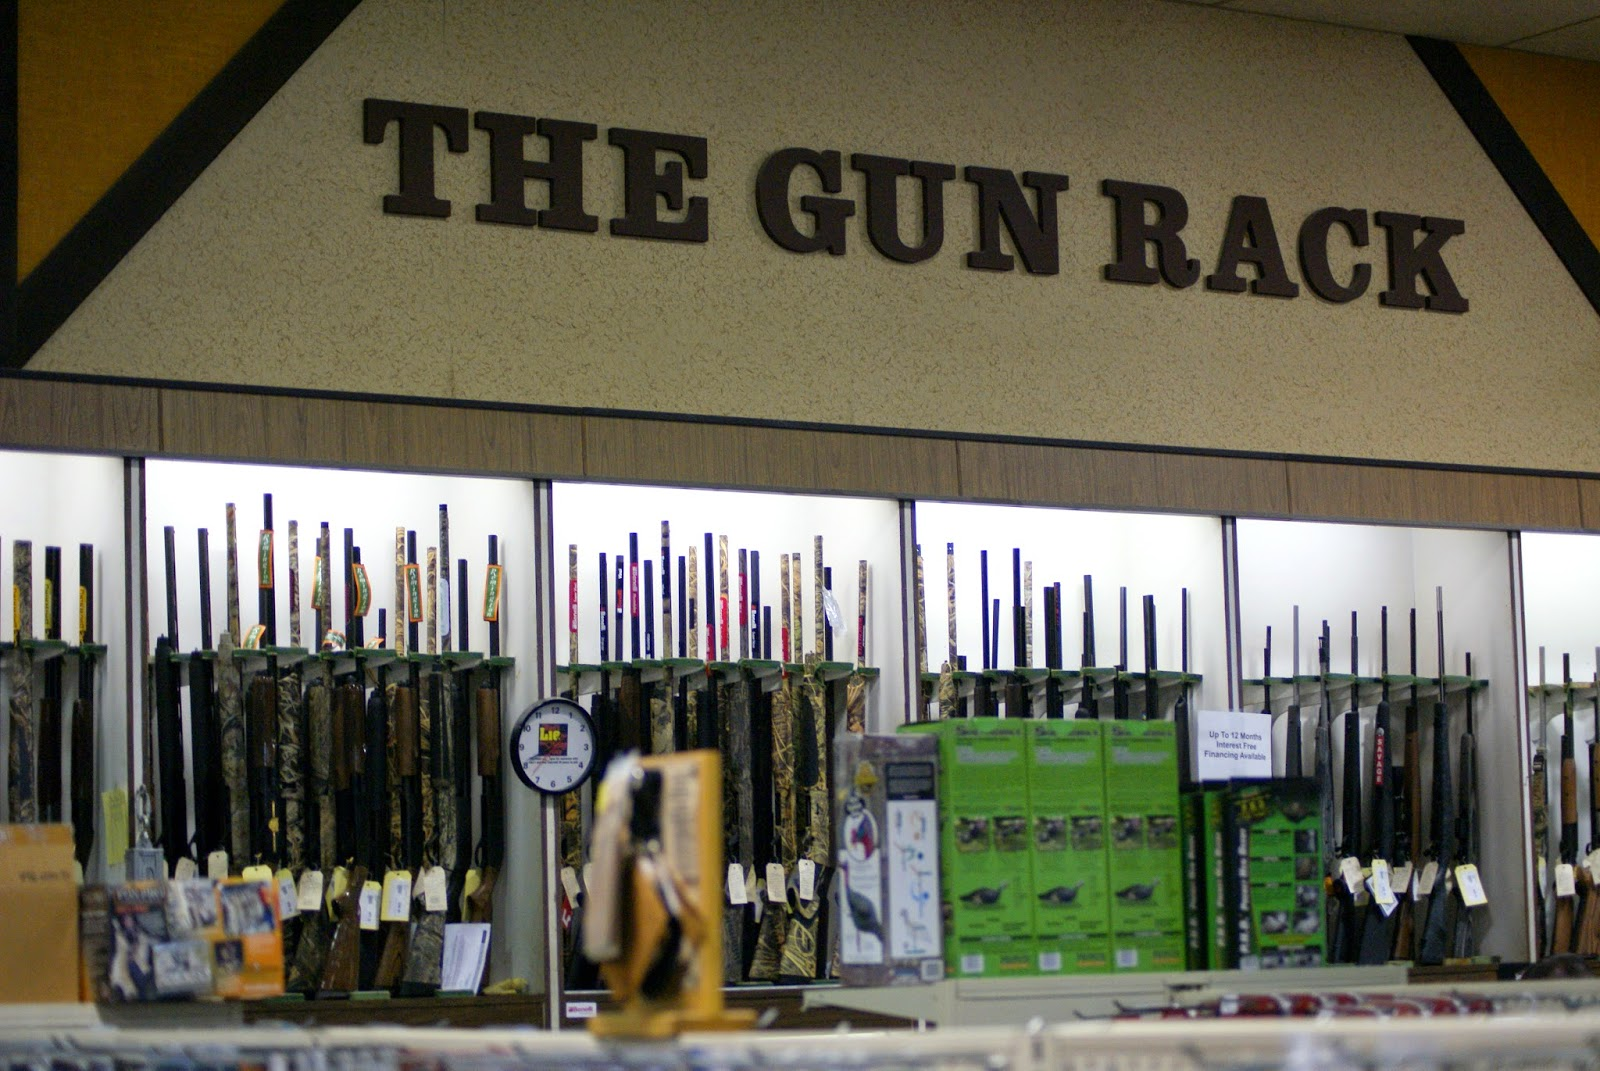 The gun rack at the Hunting Store, Alexandria